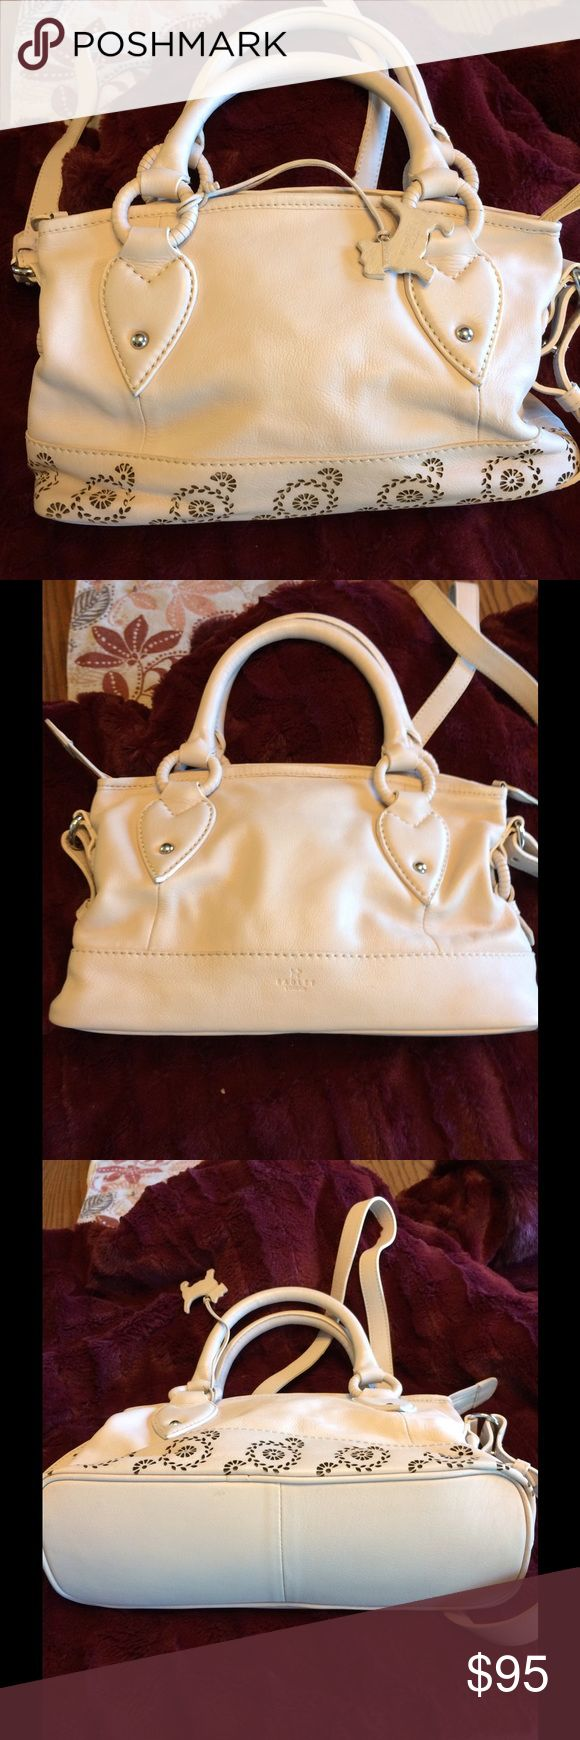 Beautiful off white small Satchel/Crossbody SALE This is in great condition with no visible signs of stains or marks.  Has Crossbody straps and is a very soft leather.  Radley of London is a well know Handbag Designer Radley of London Bags Satchels